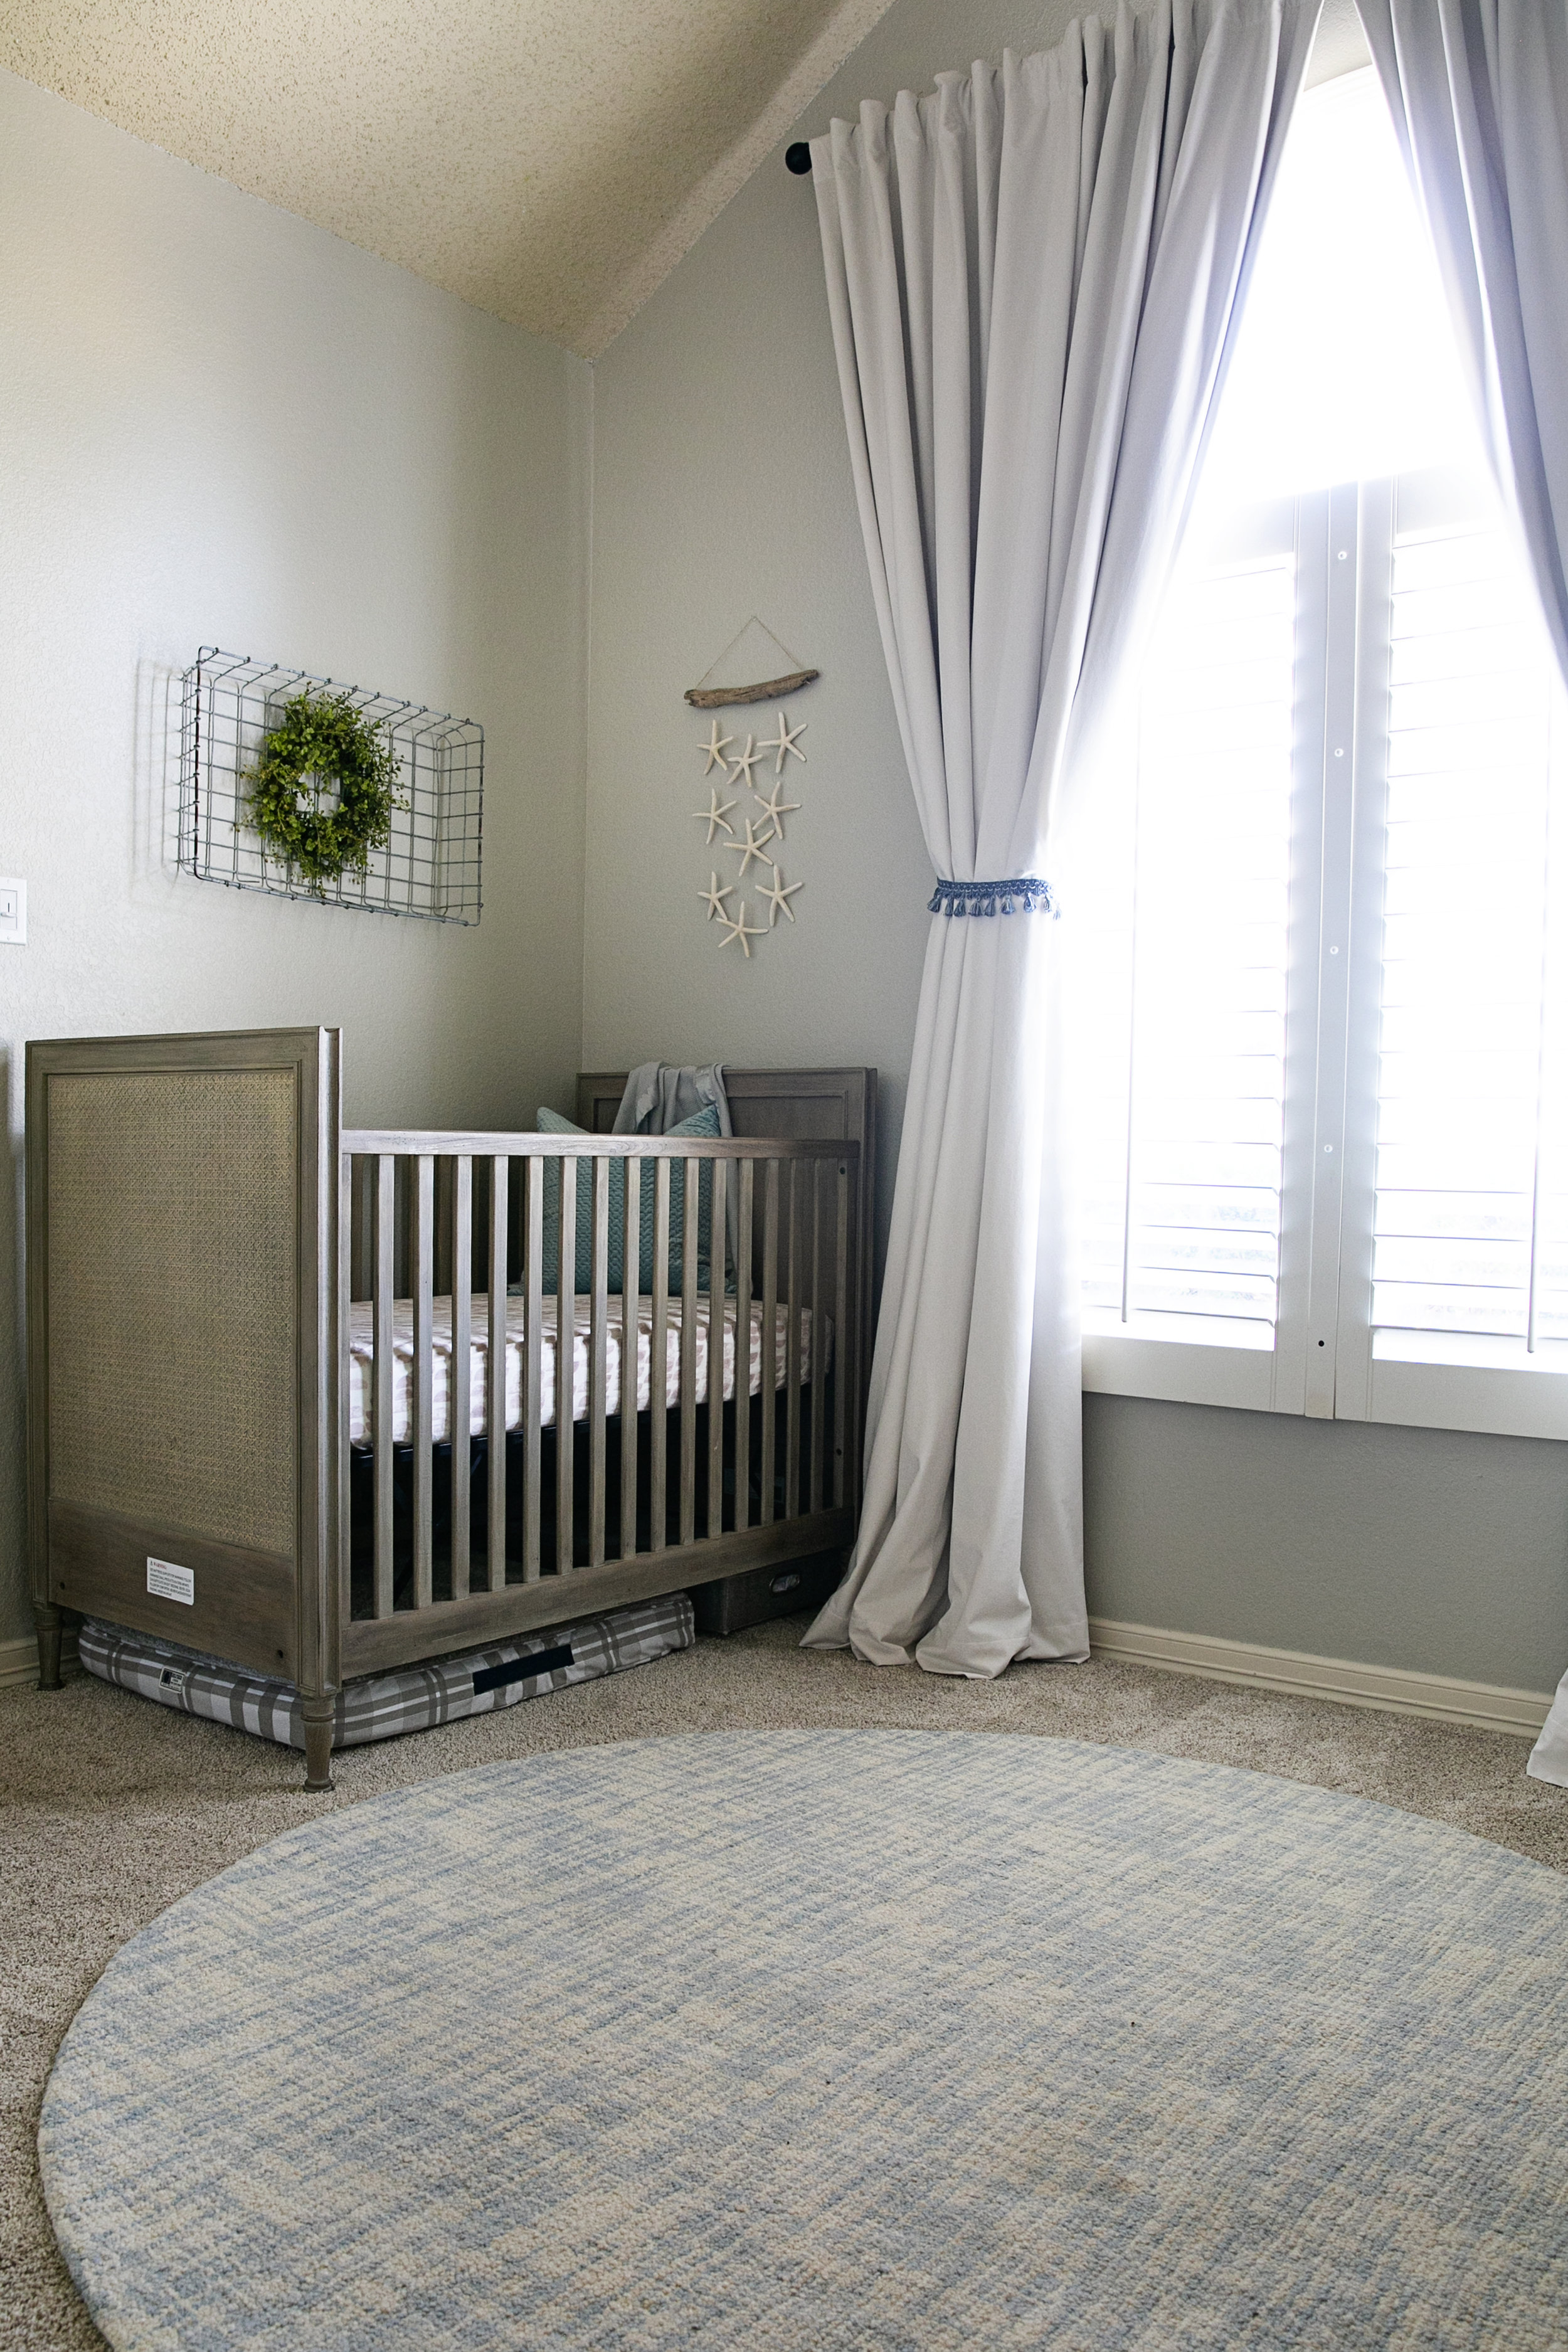 Linda_McMillan_Photography_Costal_Beach_Nursery_03.jpg